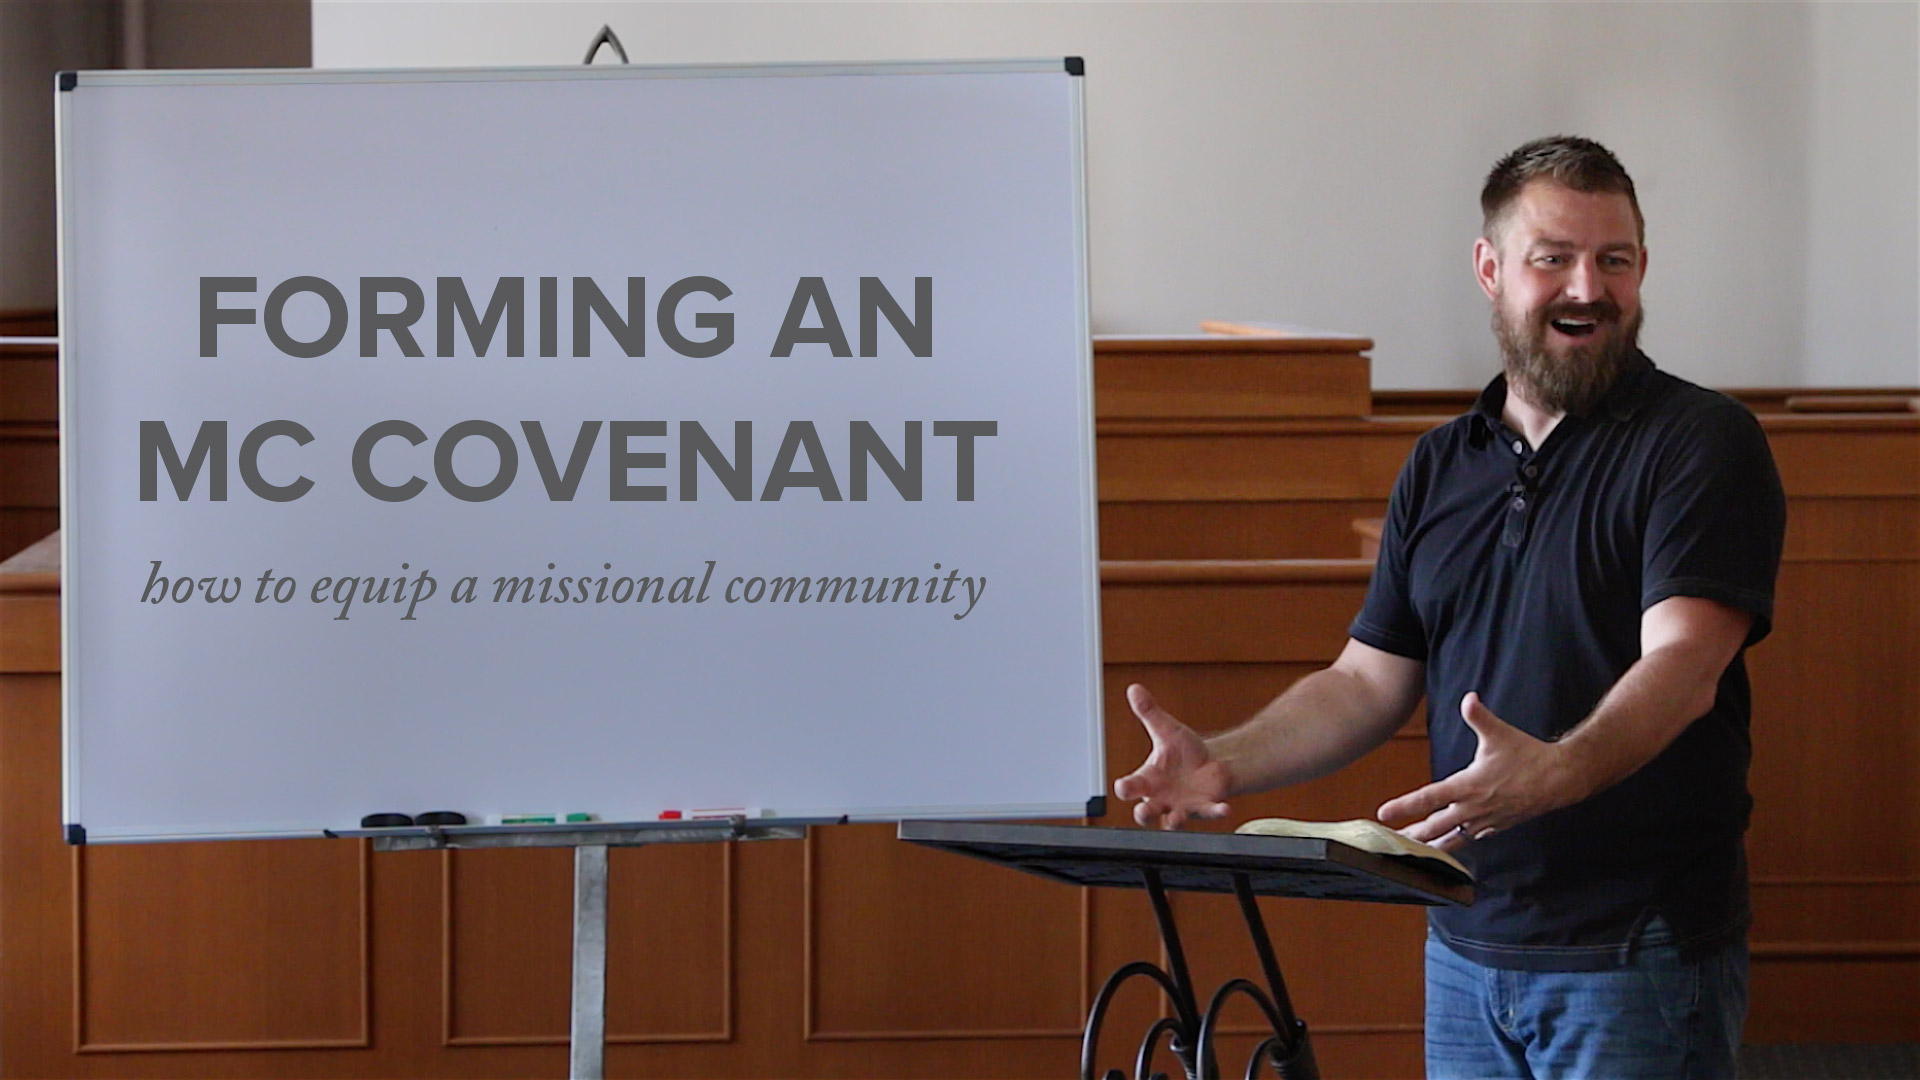 Forming an MC Covenant